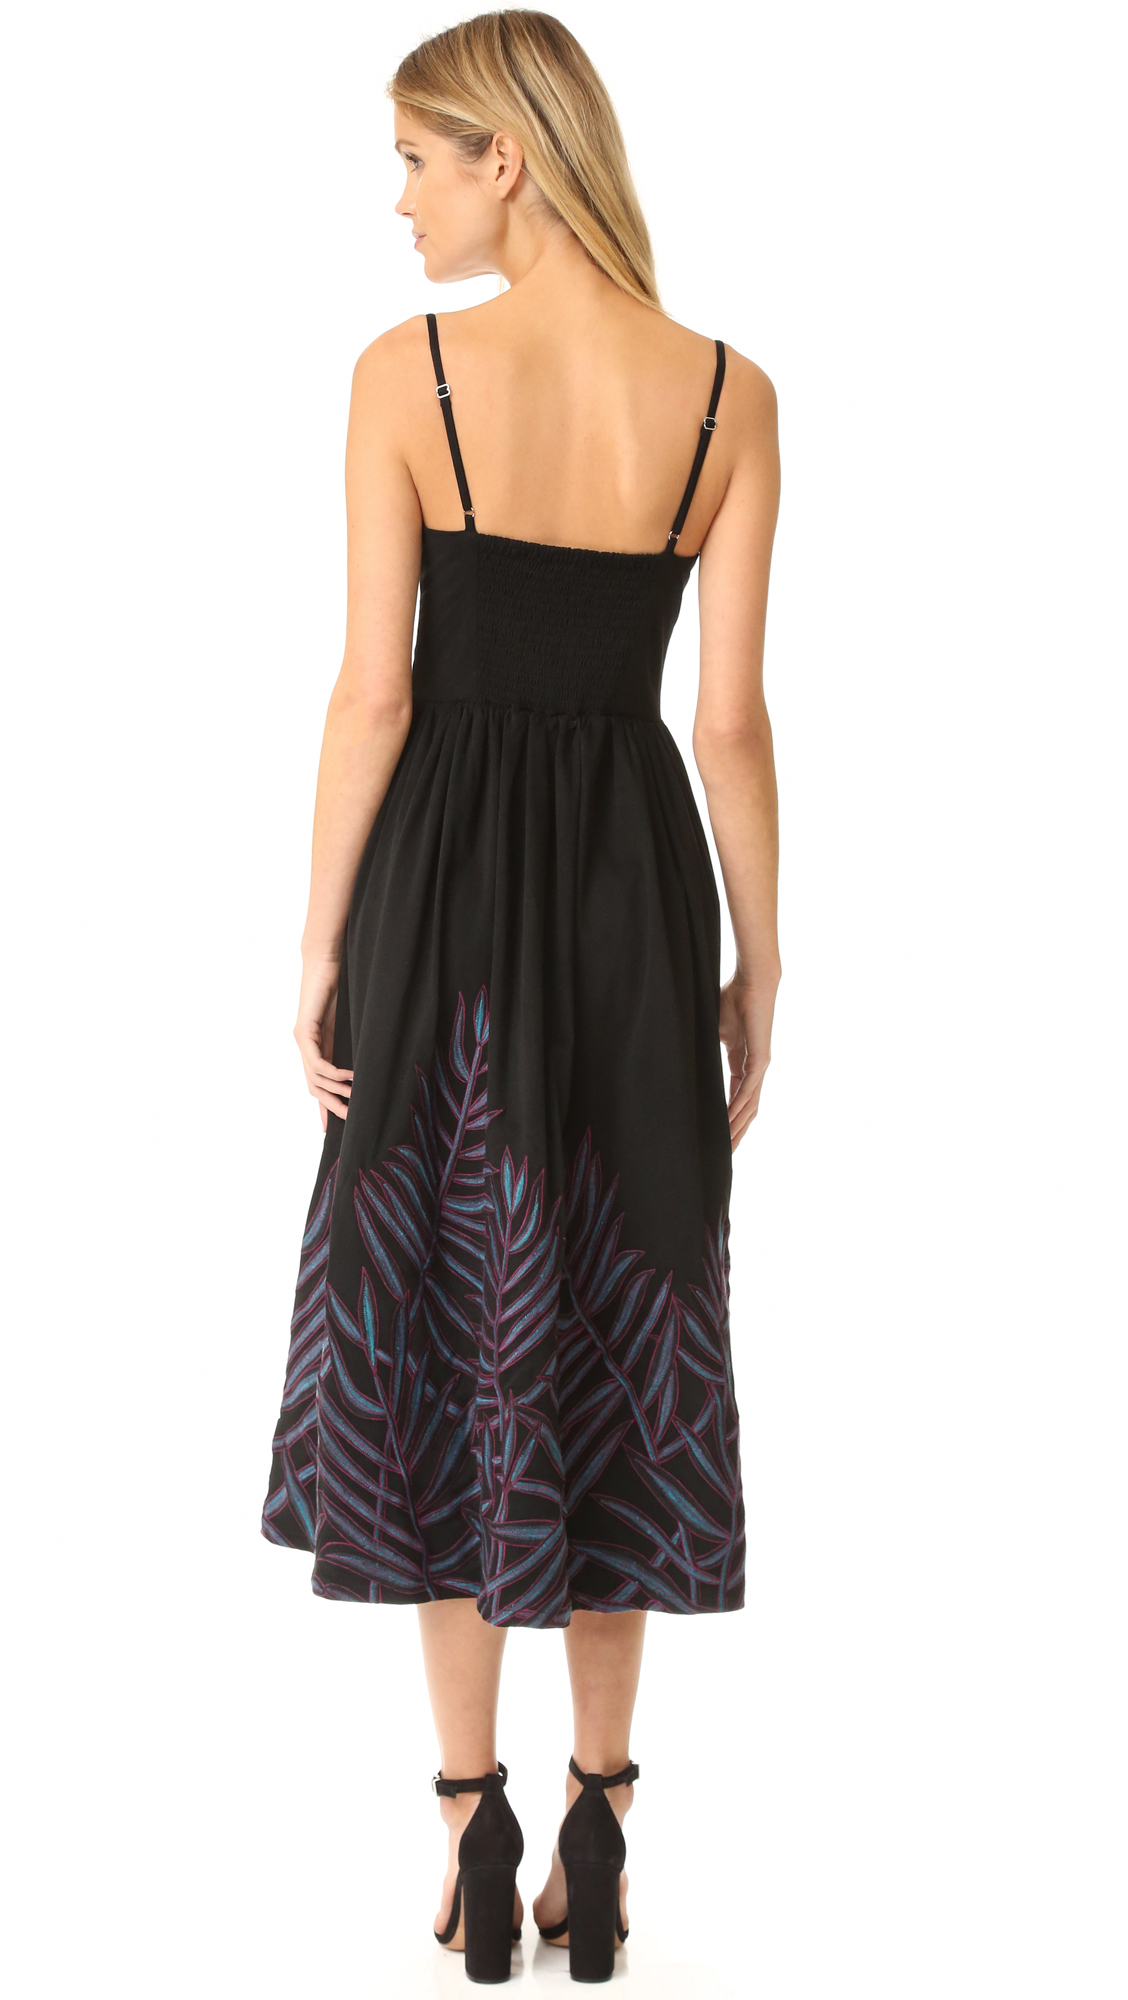 Lyst mara hoffman leaf embroidery bustier dress in black